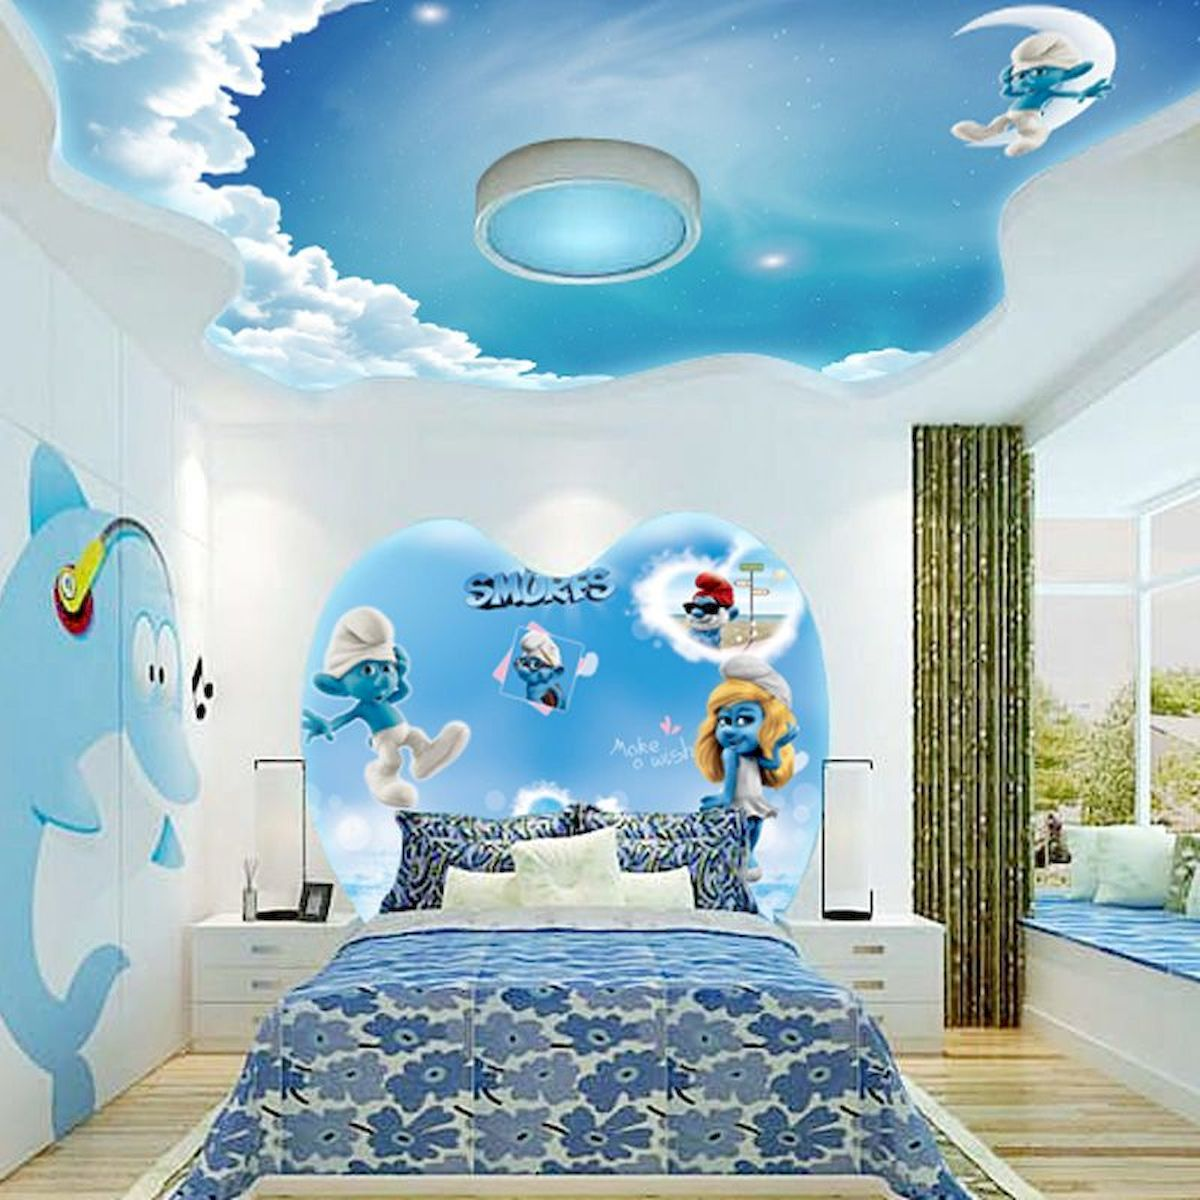 Kids Room Decorating Ideas | Kids room design, False ...